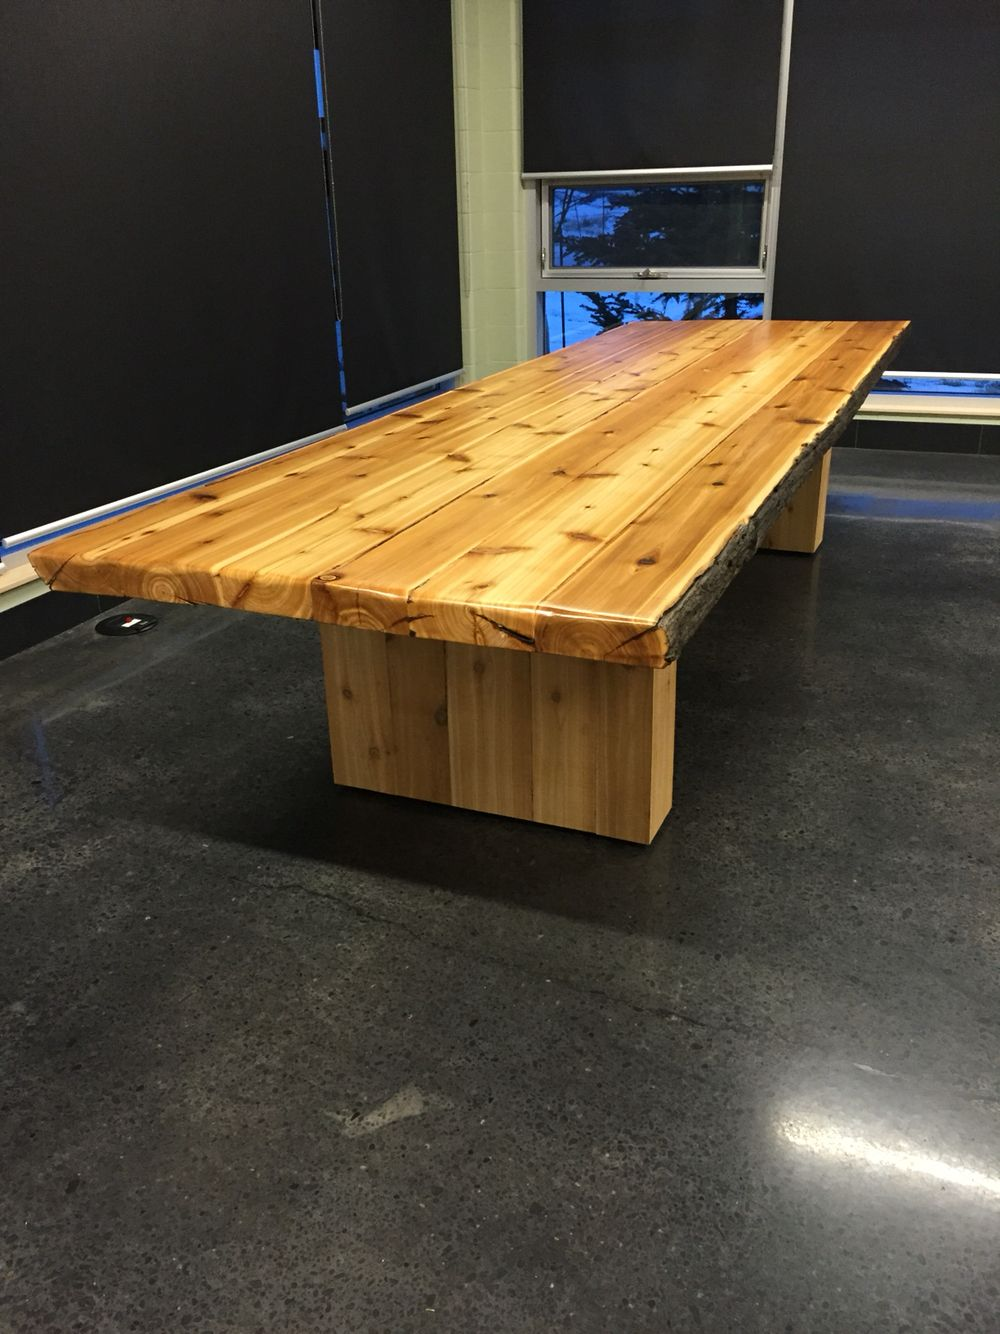 Reclaimed Cedar Table This Table Is 4 Feet Wide By 12 Feet Long And 3 Inches Thick All Boards Are Recovered From Cedar Power Cedar Table Trending Decor Table